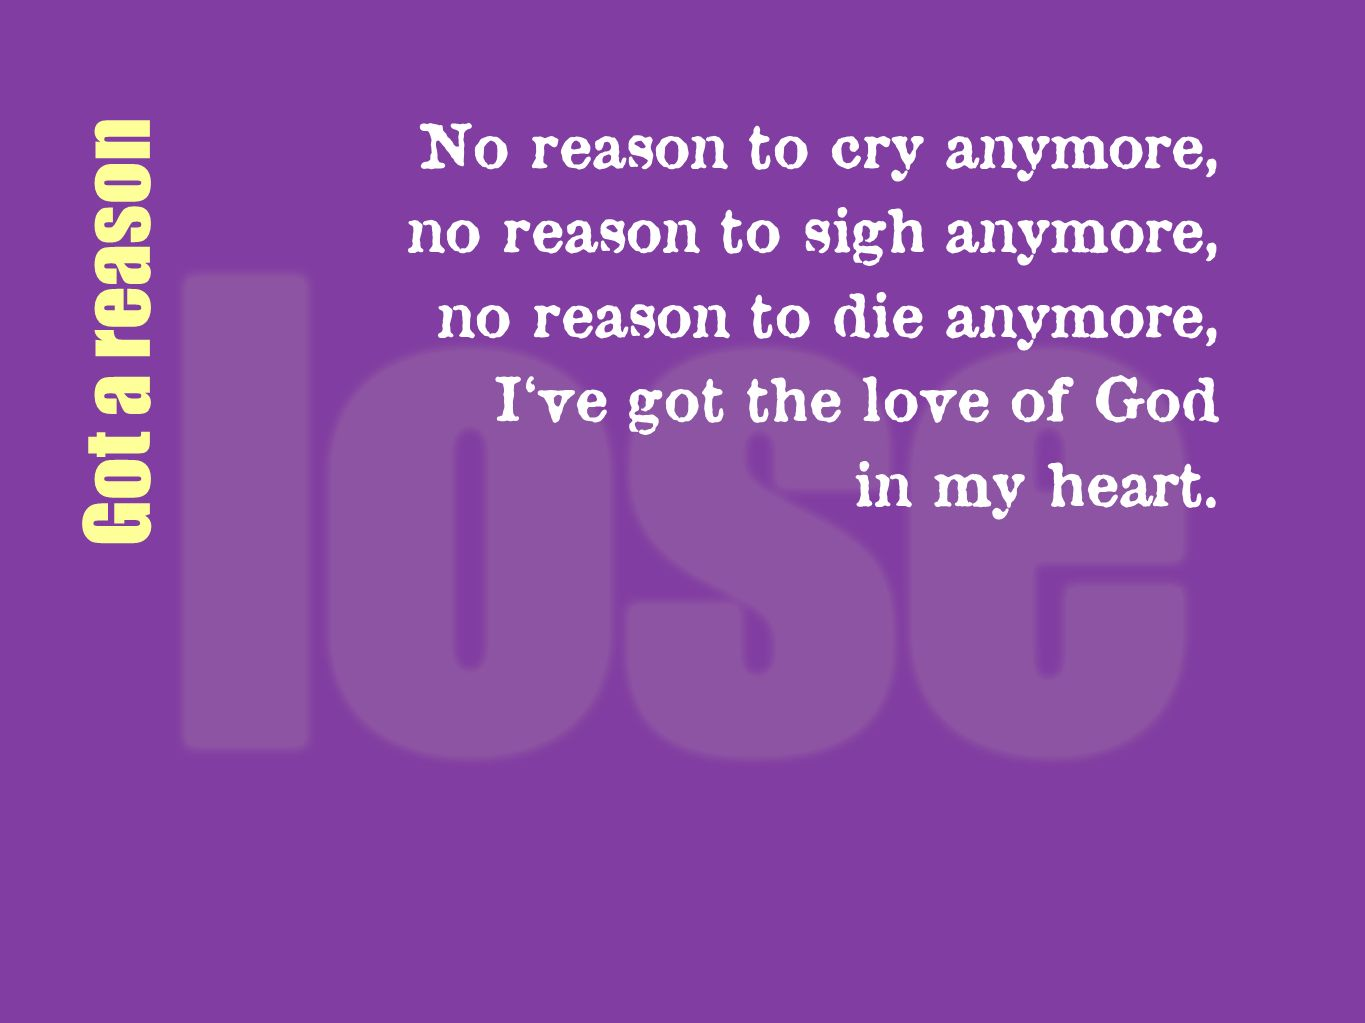 Got a reason No reason to cry anymore, no reason to sigh anymore, no reason to die anymore, Ive got the love of God in my heart.